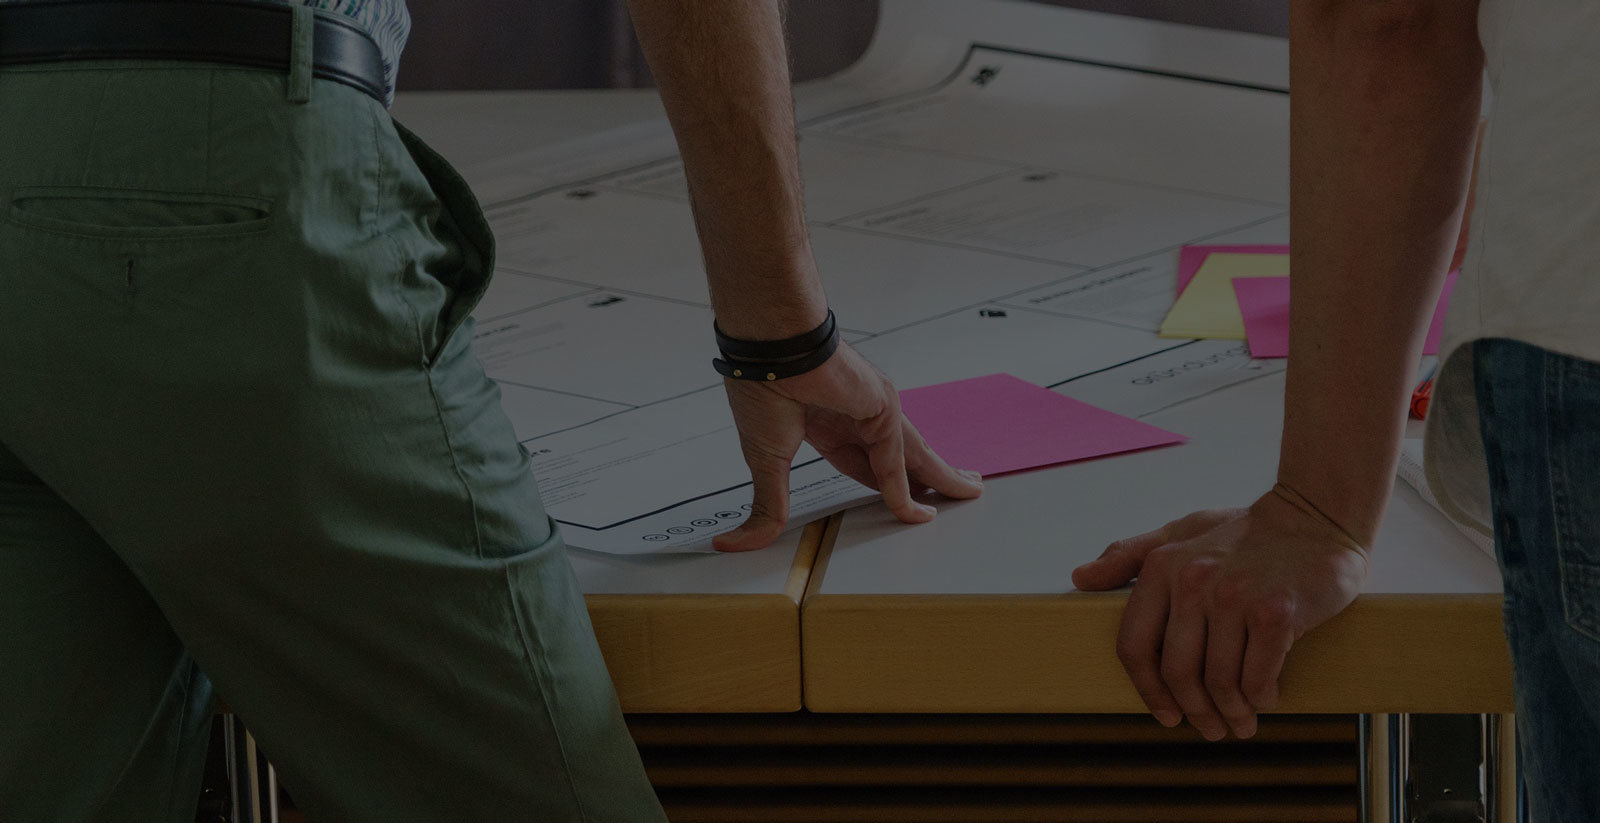 Business Analysts are on the GO! Design with Users, not for Users